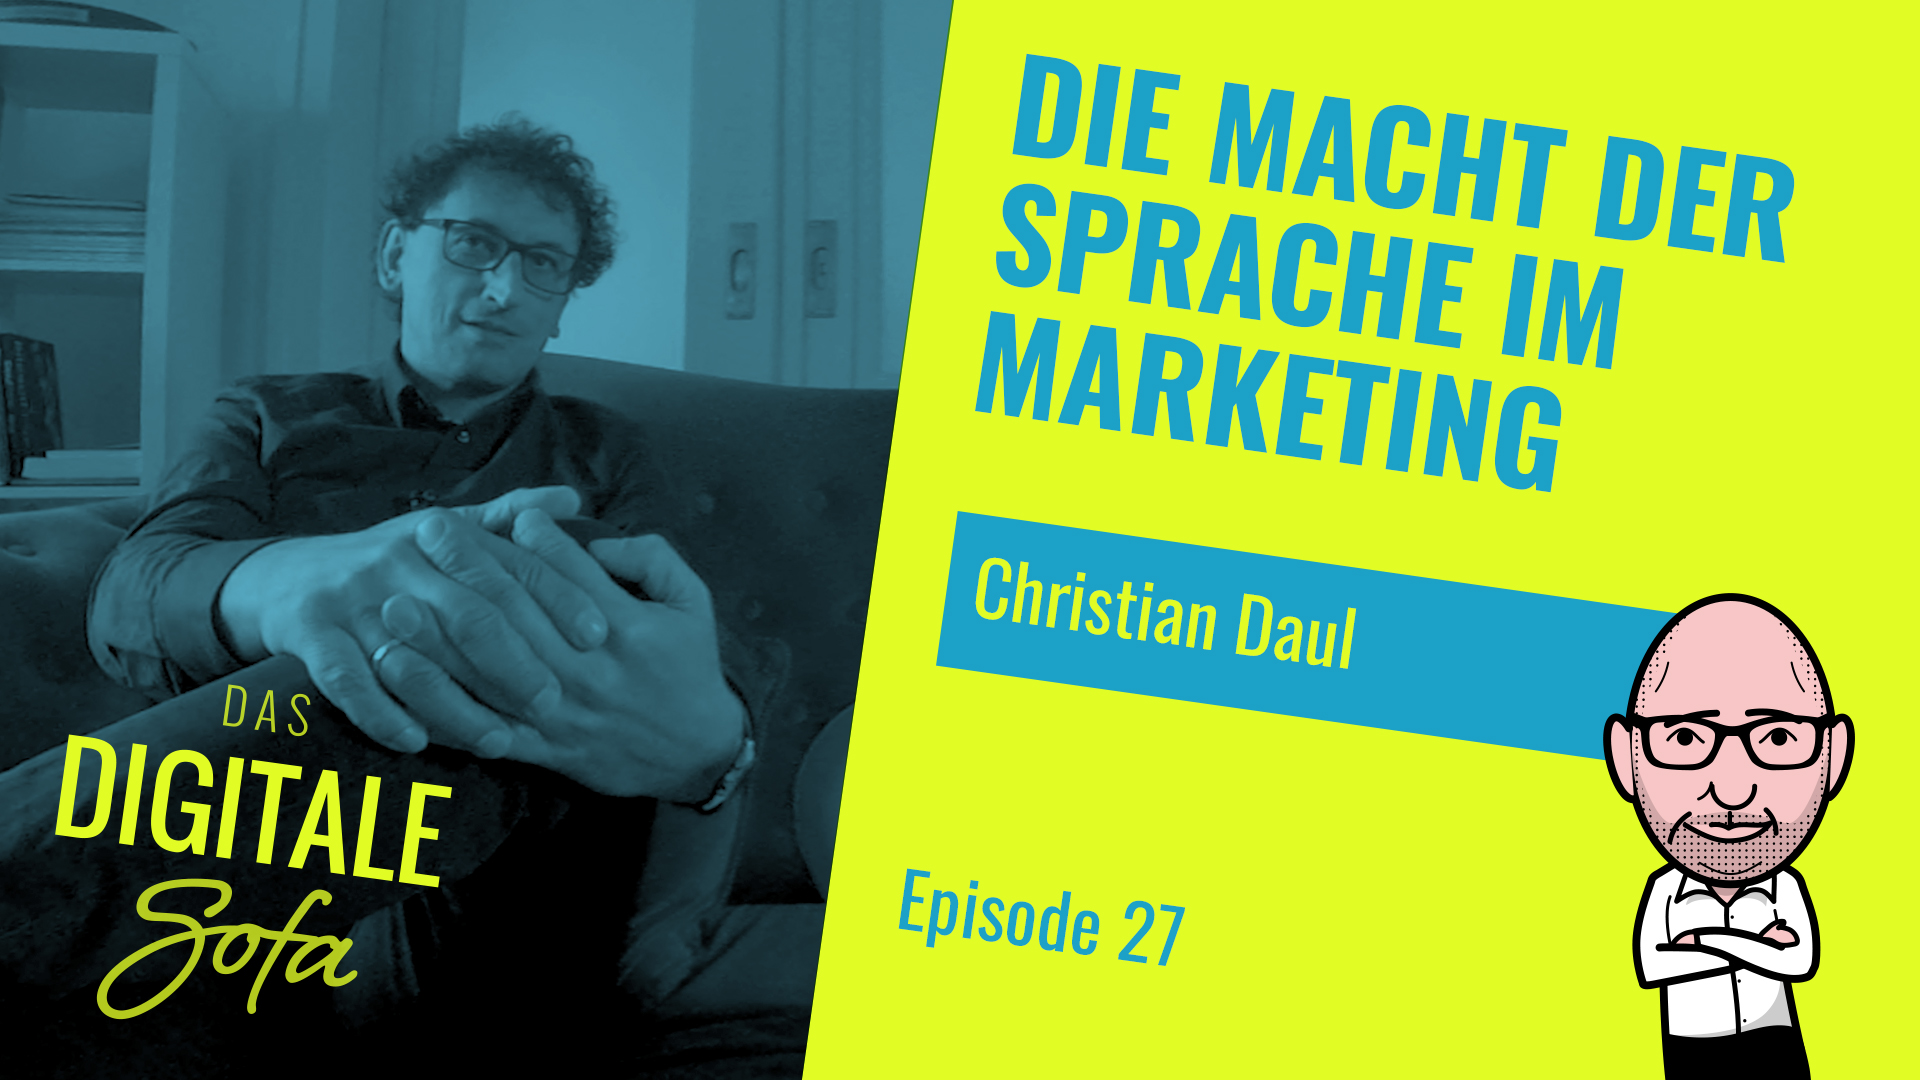 DIE MACHT DER SPRACHE IM MARKETING- DAS DIGITALE SOFA #27 MIT CHRISTIAN DAUL